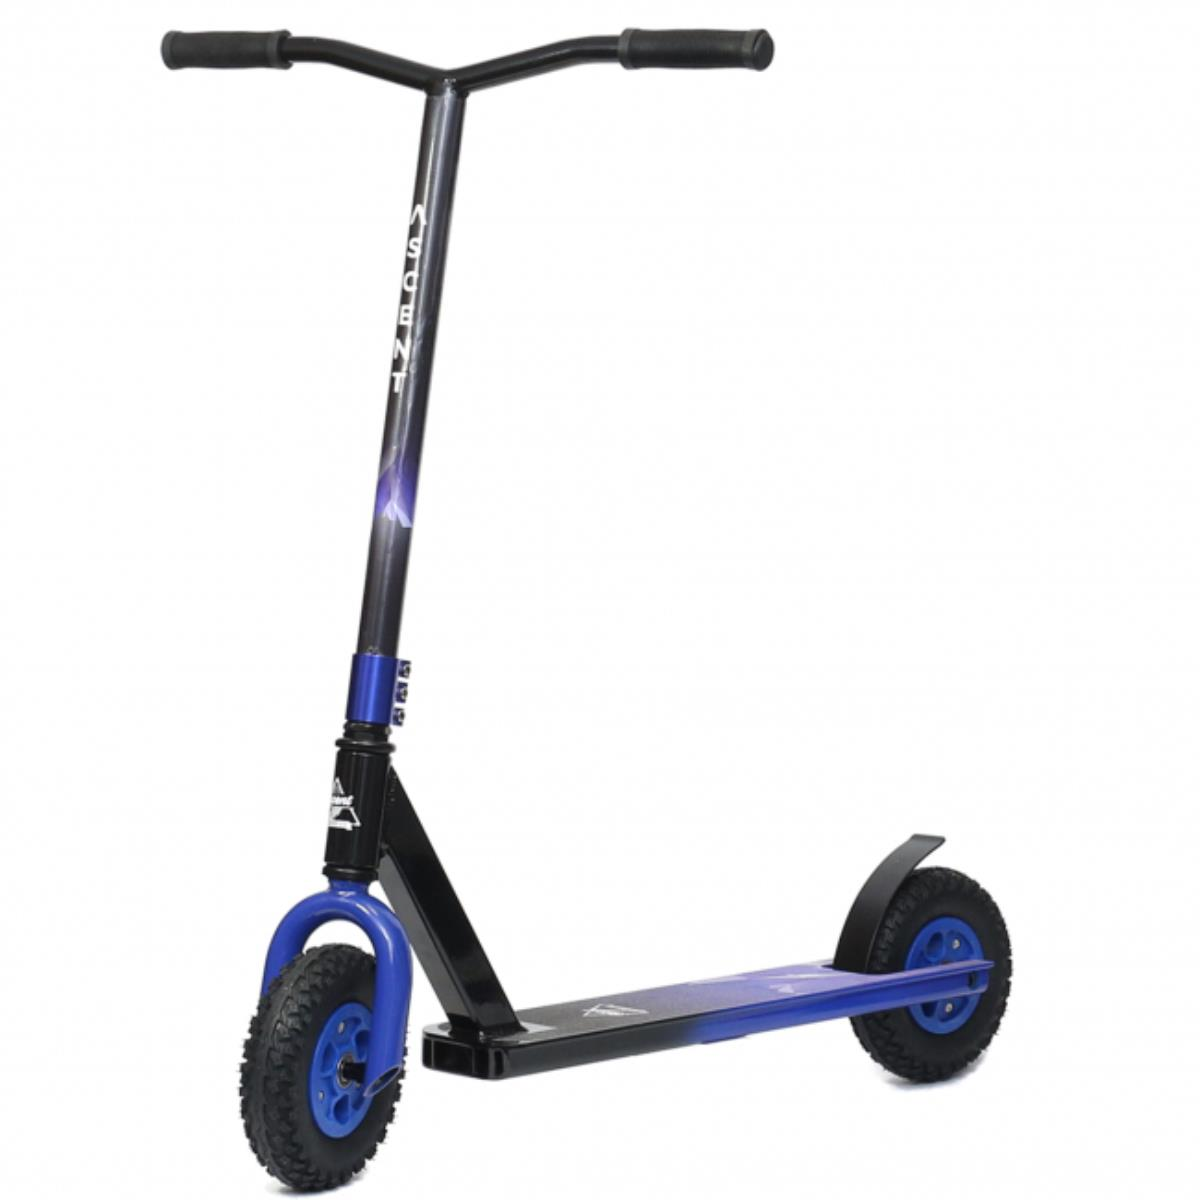 Kick scooter PNG Images.